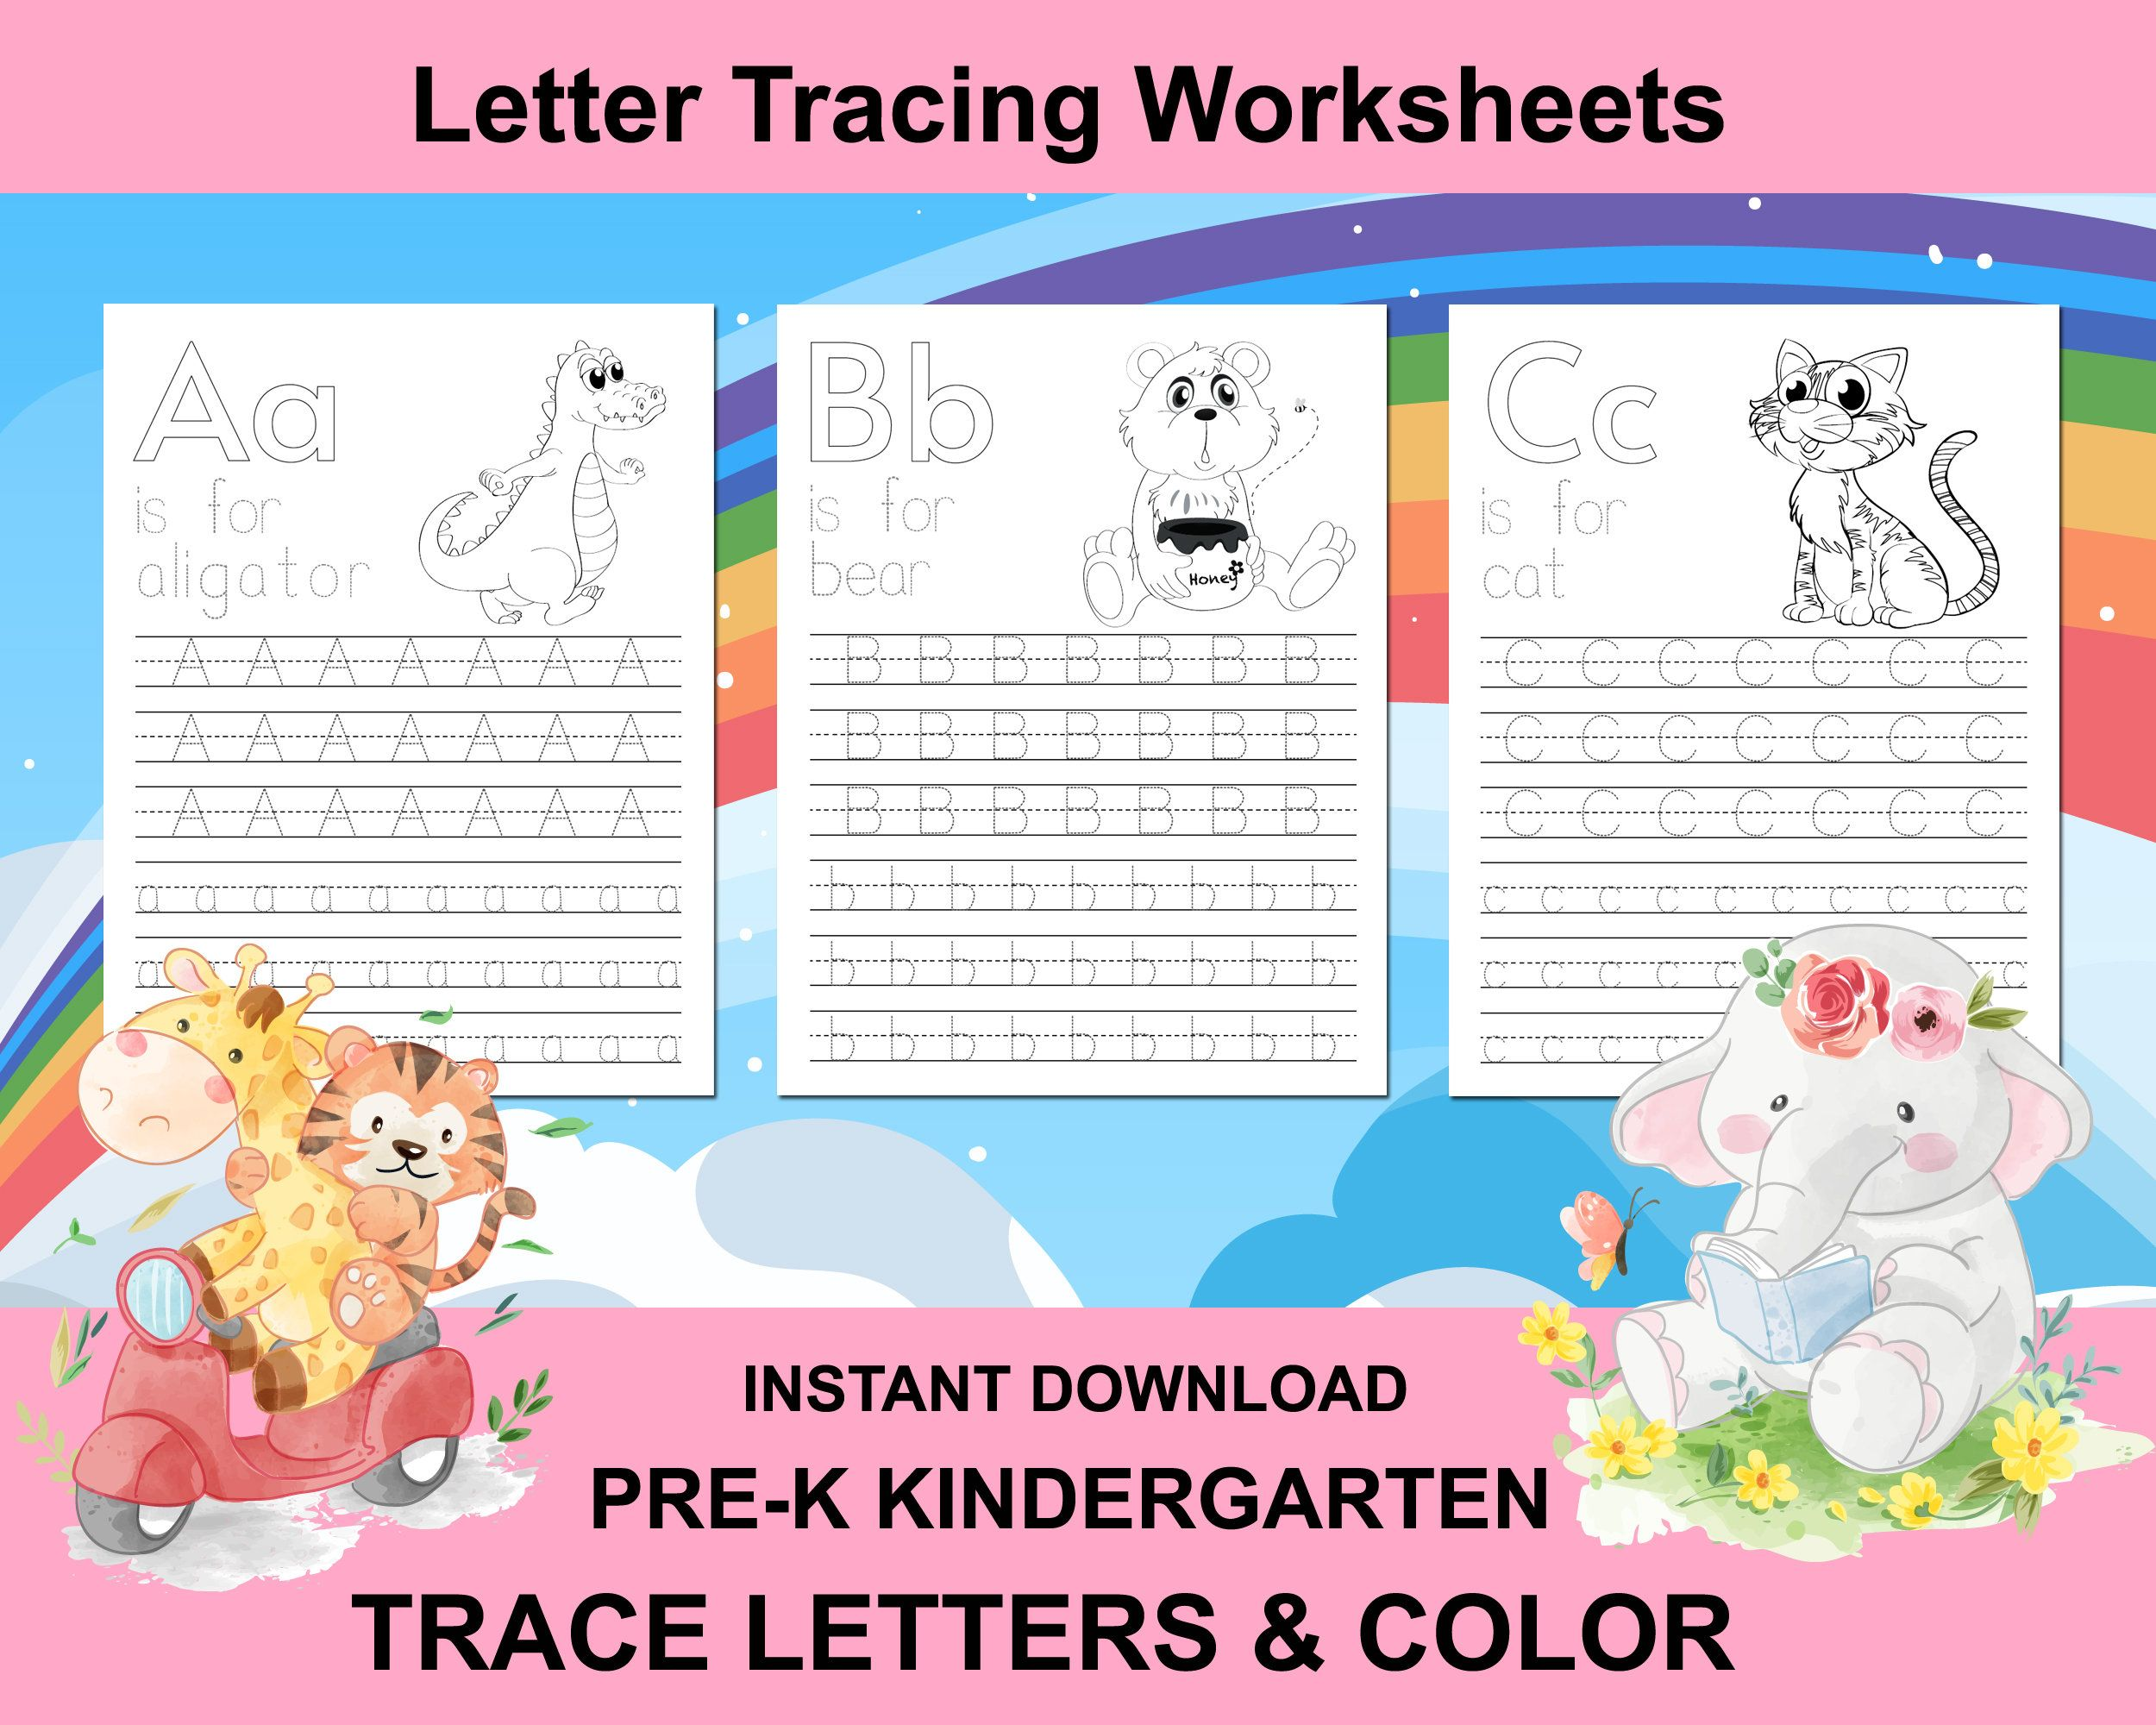 Letter Tracing Worksheets Alphabet Writing Practice Abc